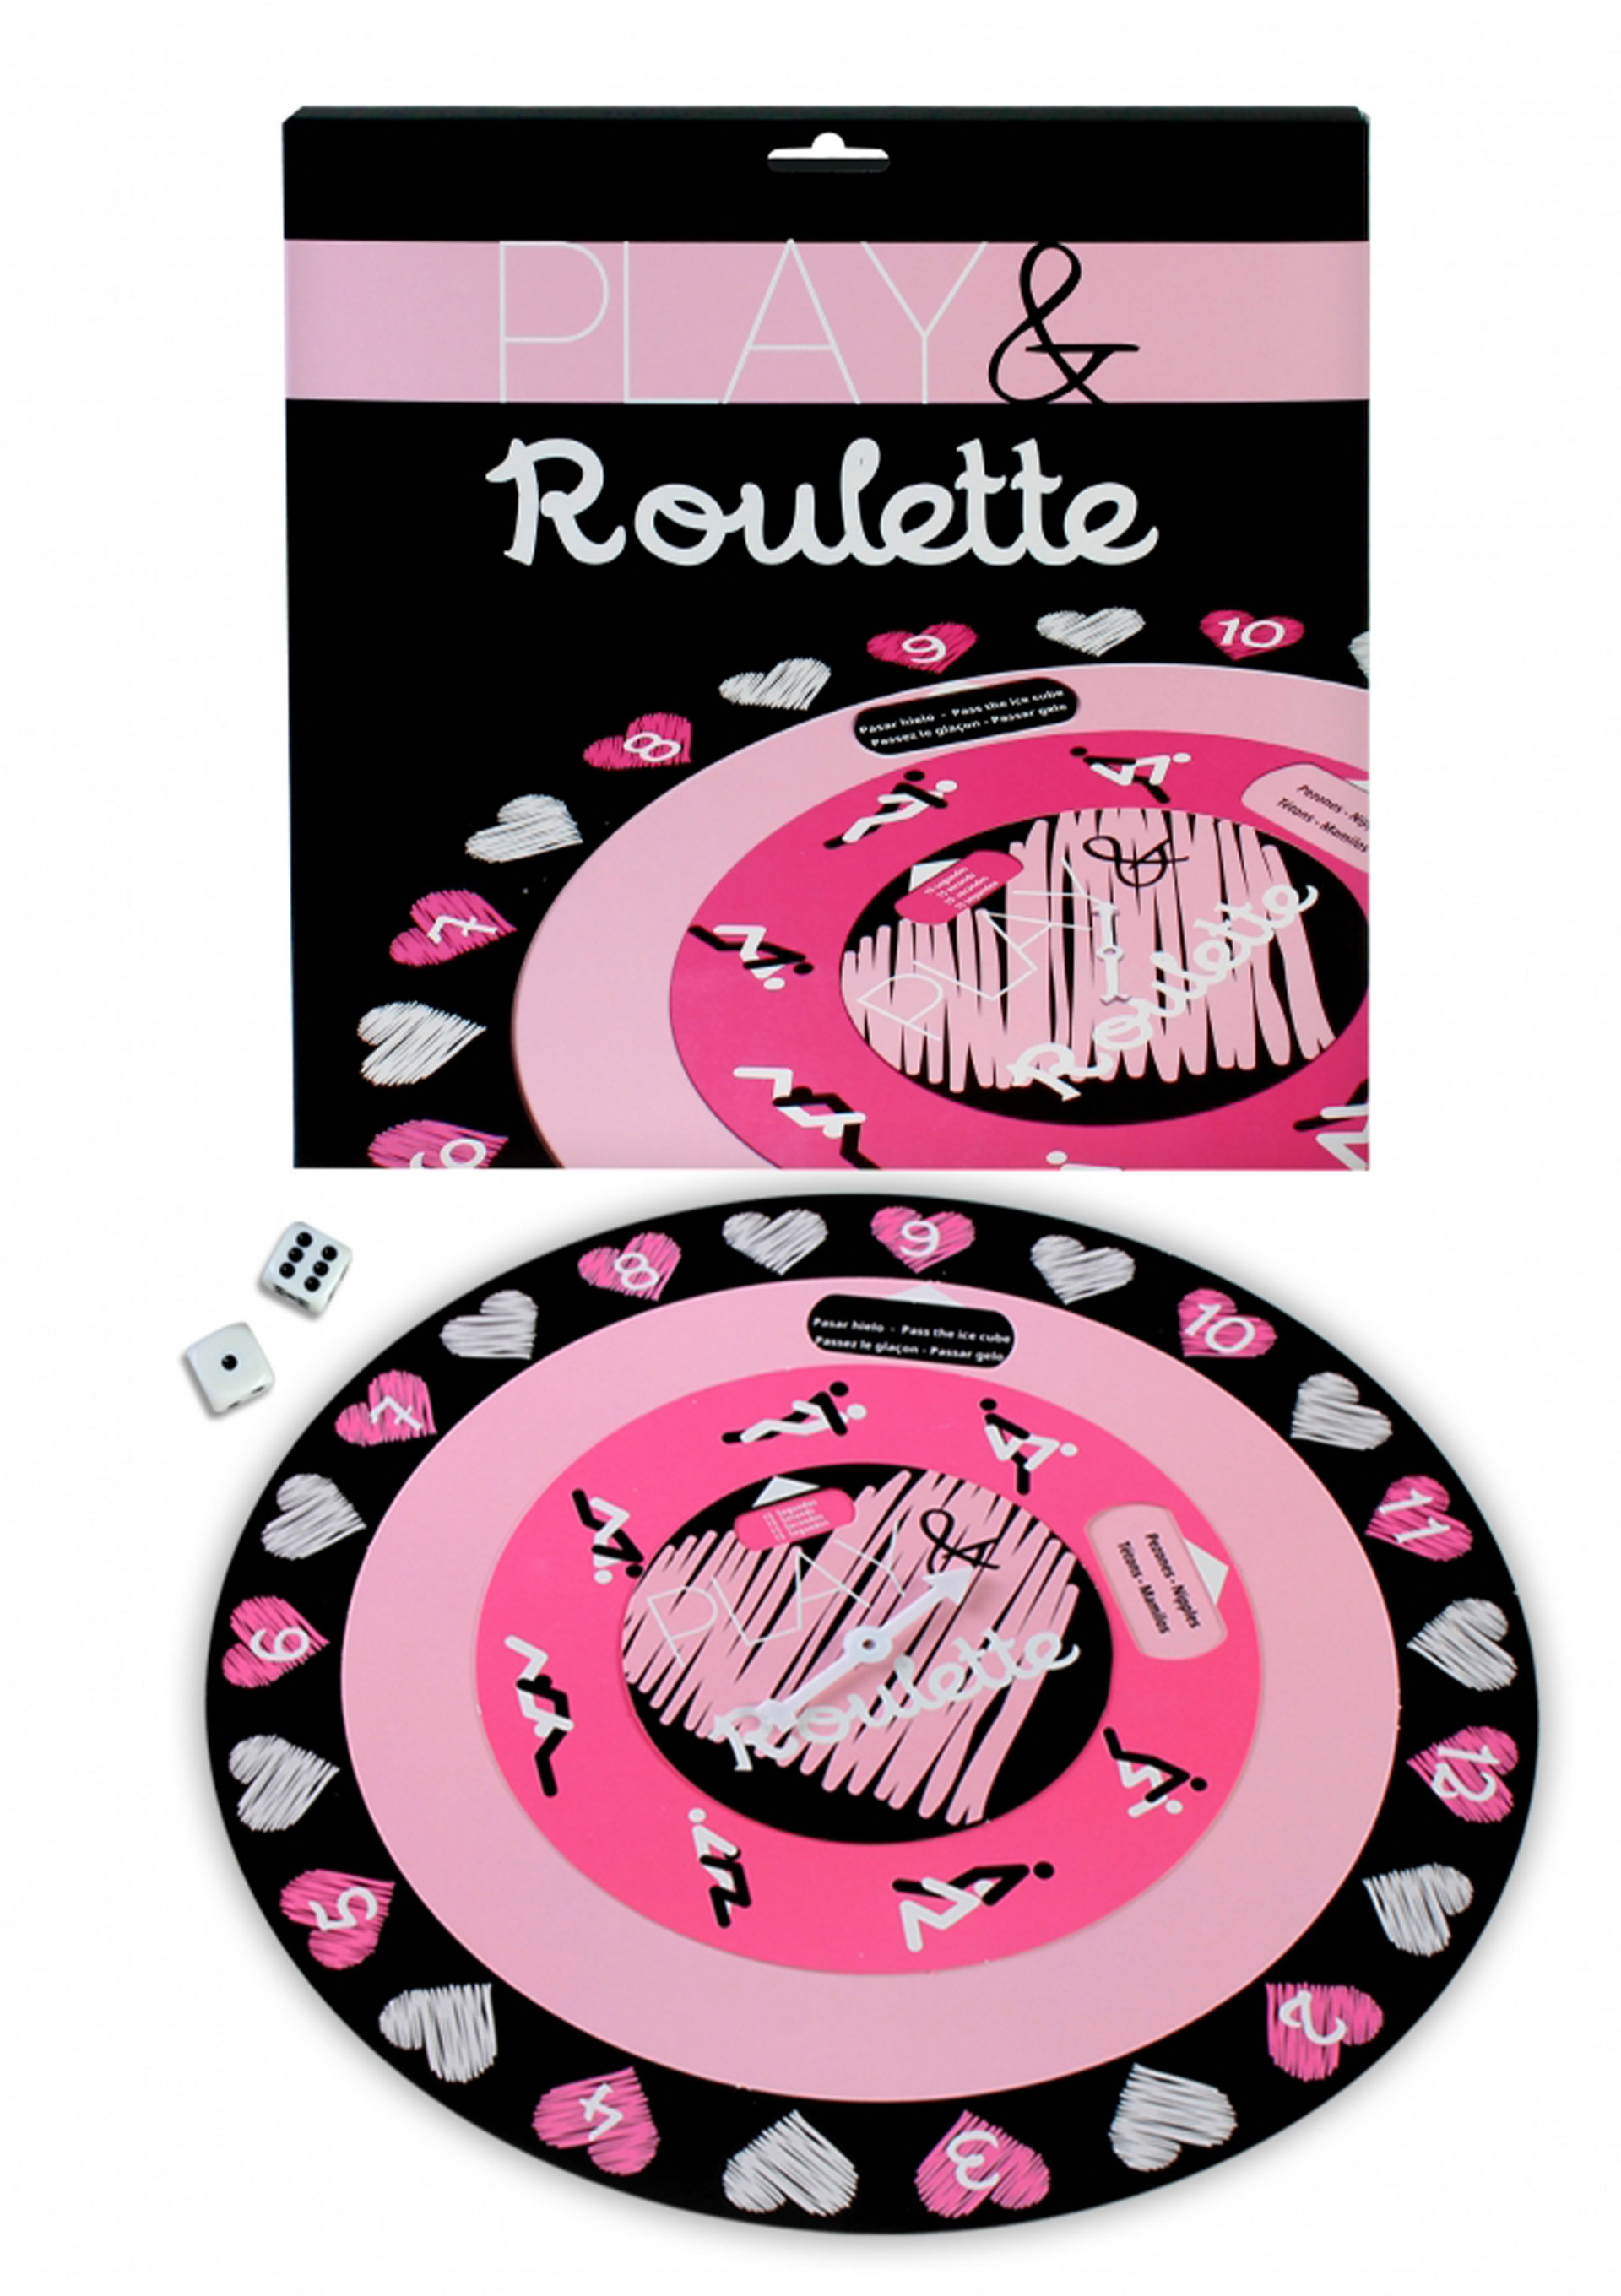 Play & Roulette